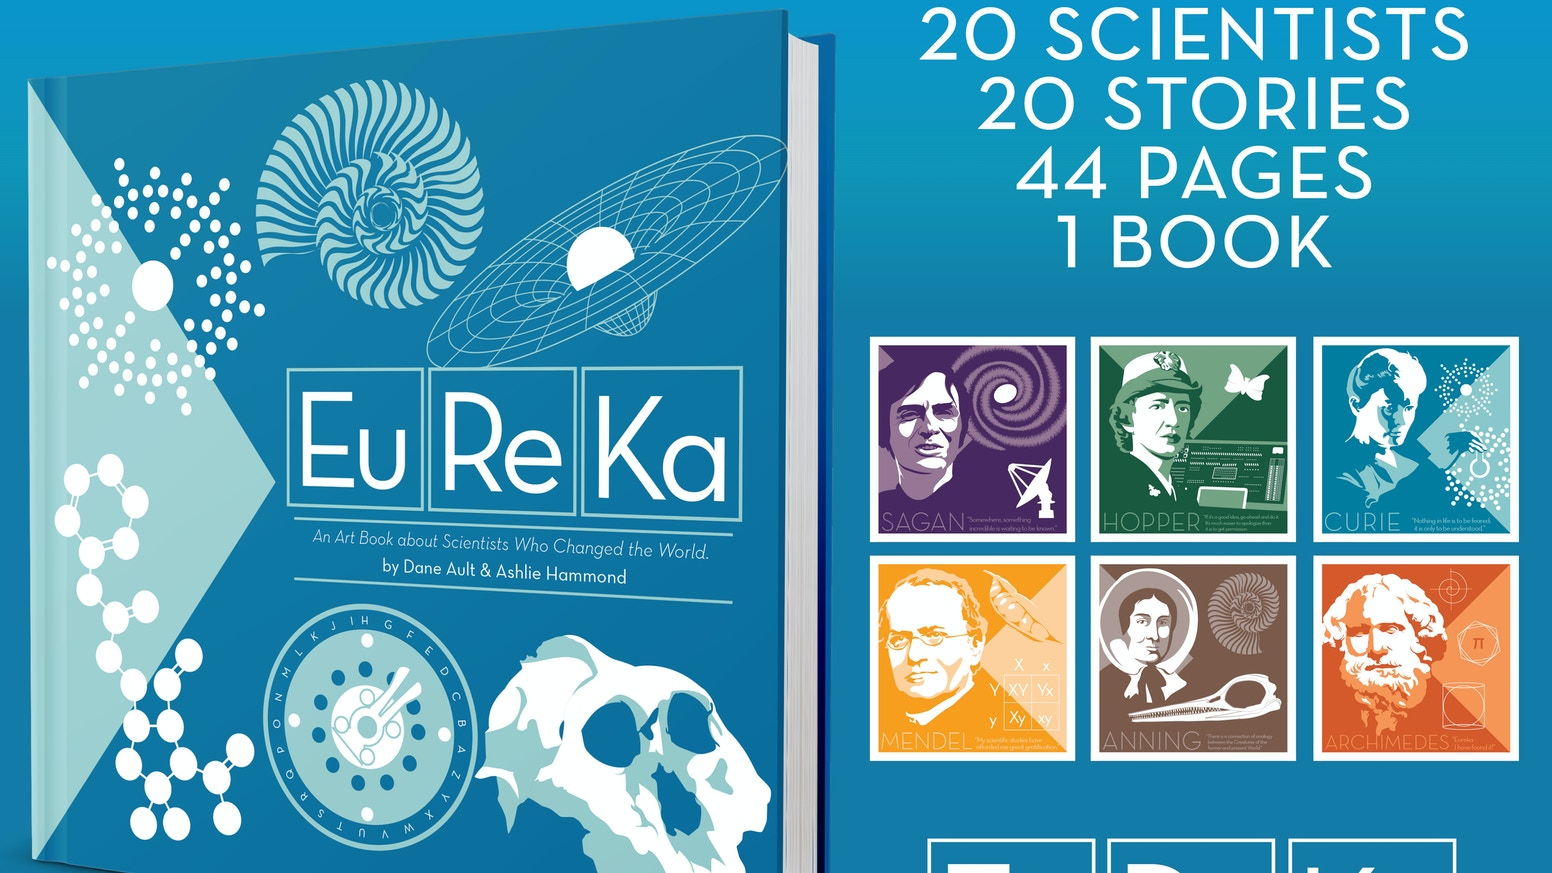 An art book about scientists who changed the world.